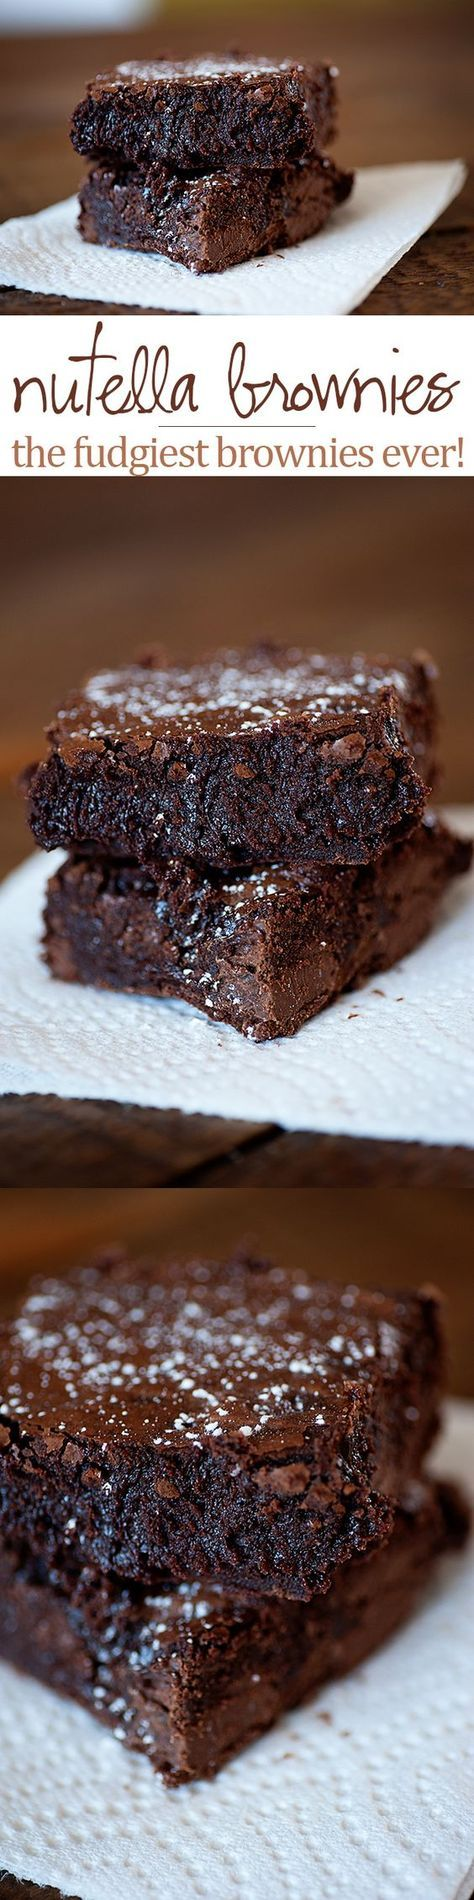 Super fudgy Nutella brownies...these are so rich and full of chocolate!